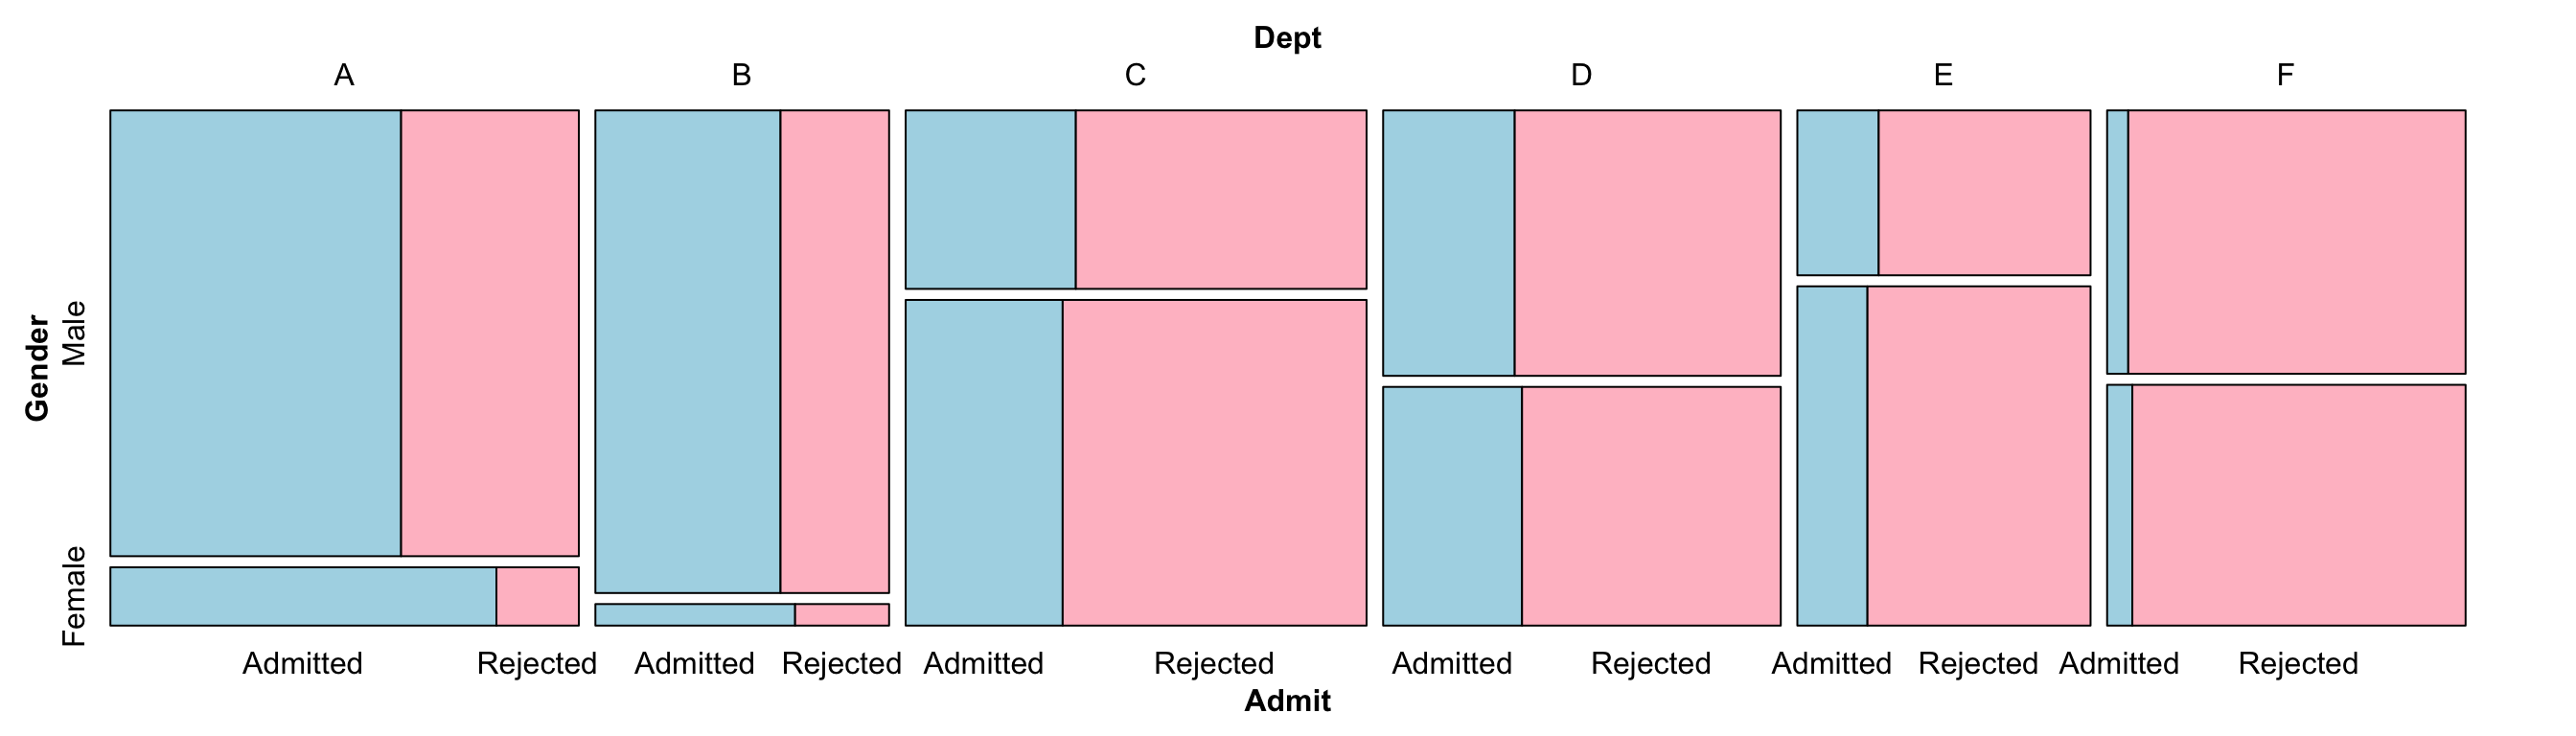 Mosaic plot with a different variable splitting order: first department, then gender, then admission status